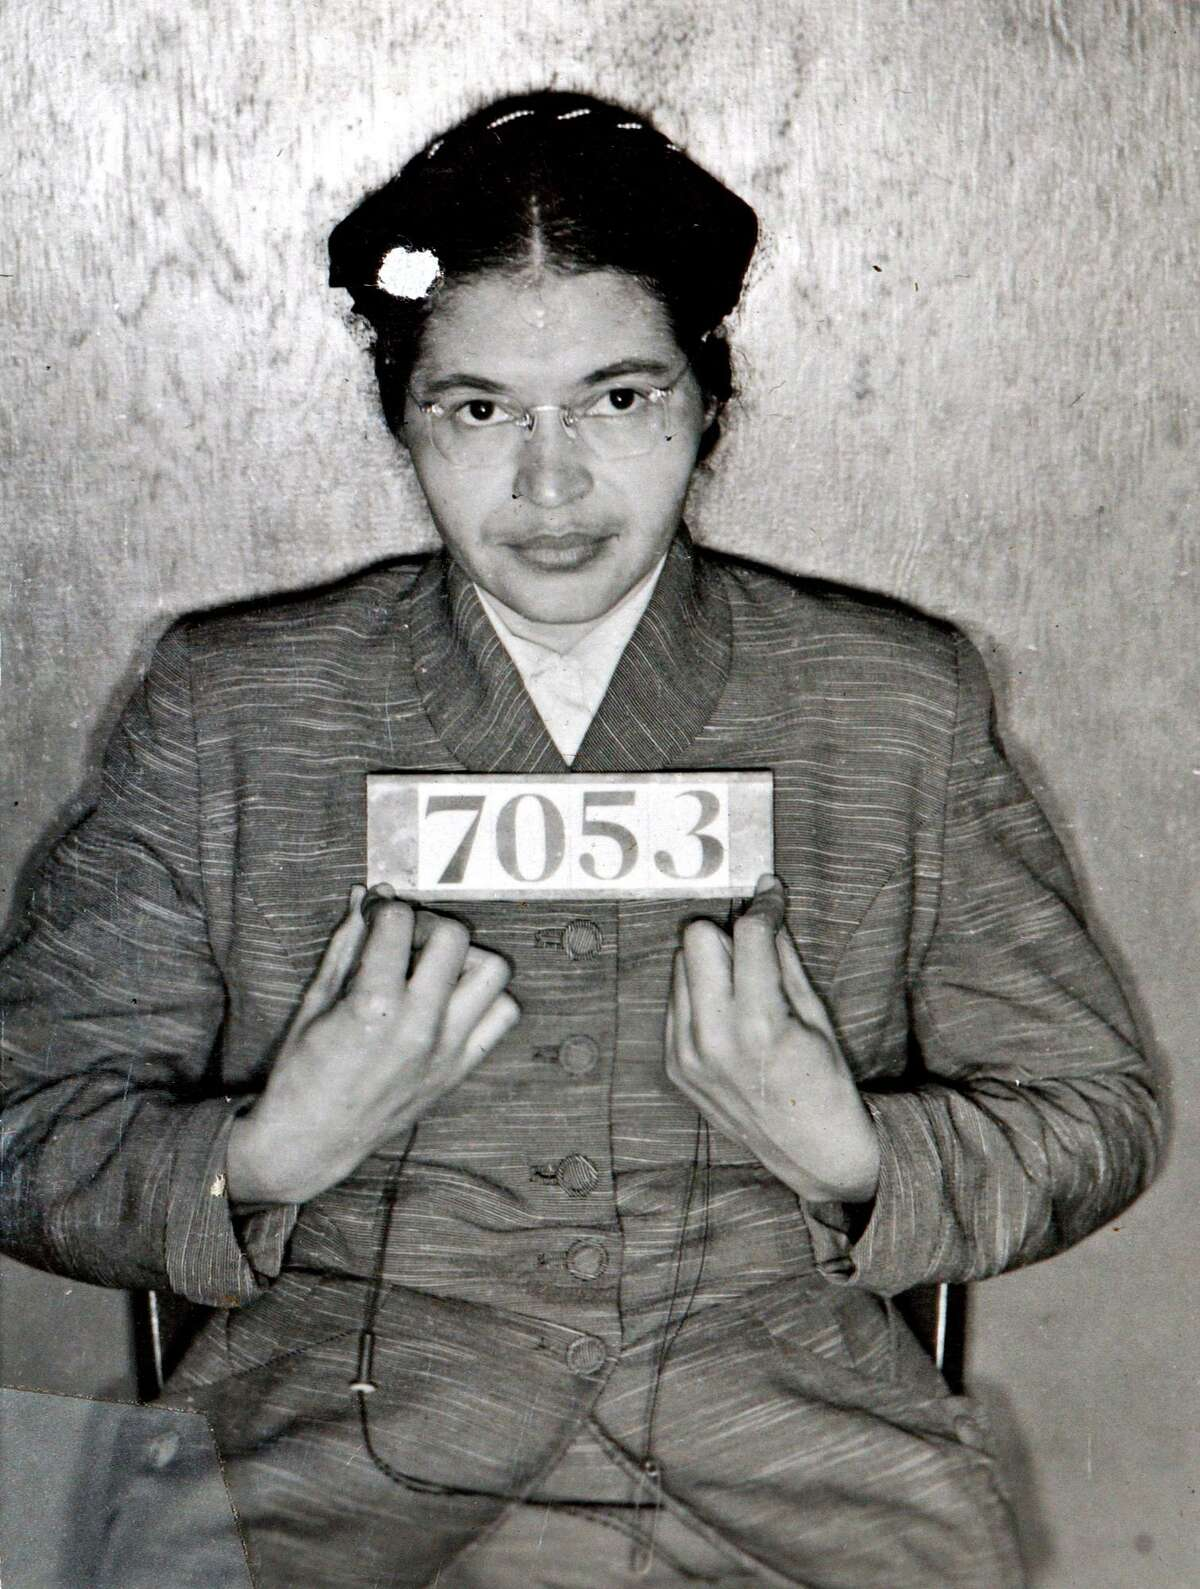 The Feb. 22, 1956 file photo shows Rosa Parks after she was arrested for refusing to give up her seat on a bus for a white passenger on Dec. 1, 1955 in Montgomery, Ala. The 50th anniversary of her arrest will be celebrated next Thursday Dec. 1, 2005, with a daylong series of events that includes a children's march to the Capitol in Montgomery.